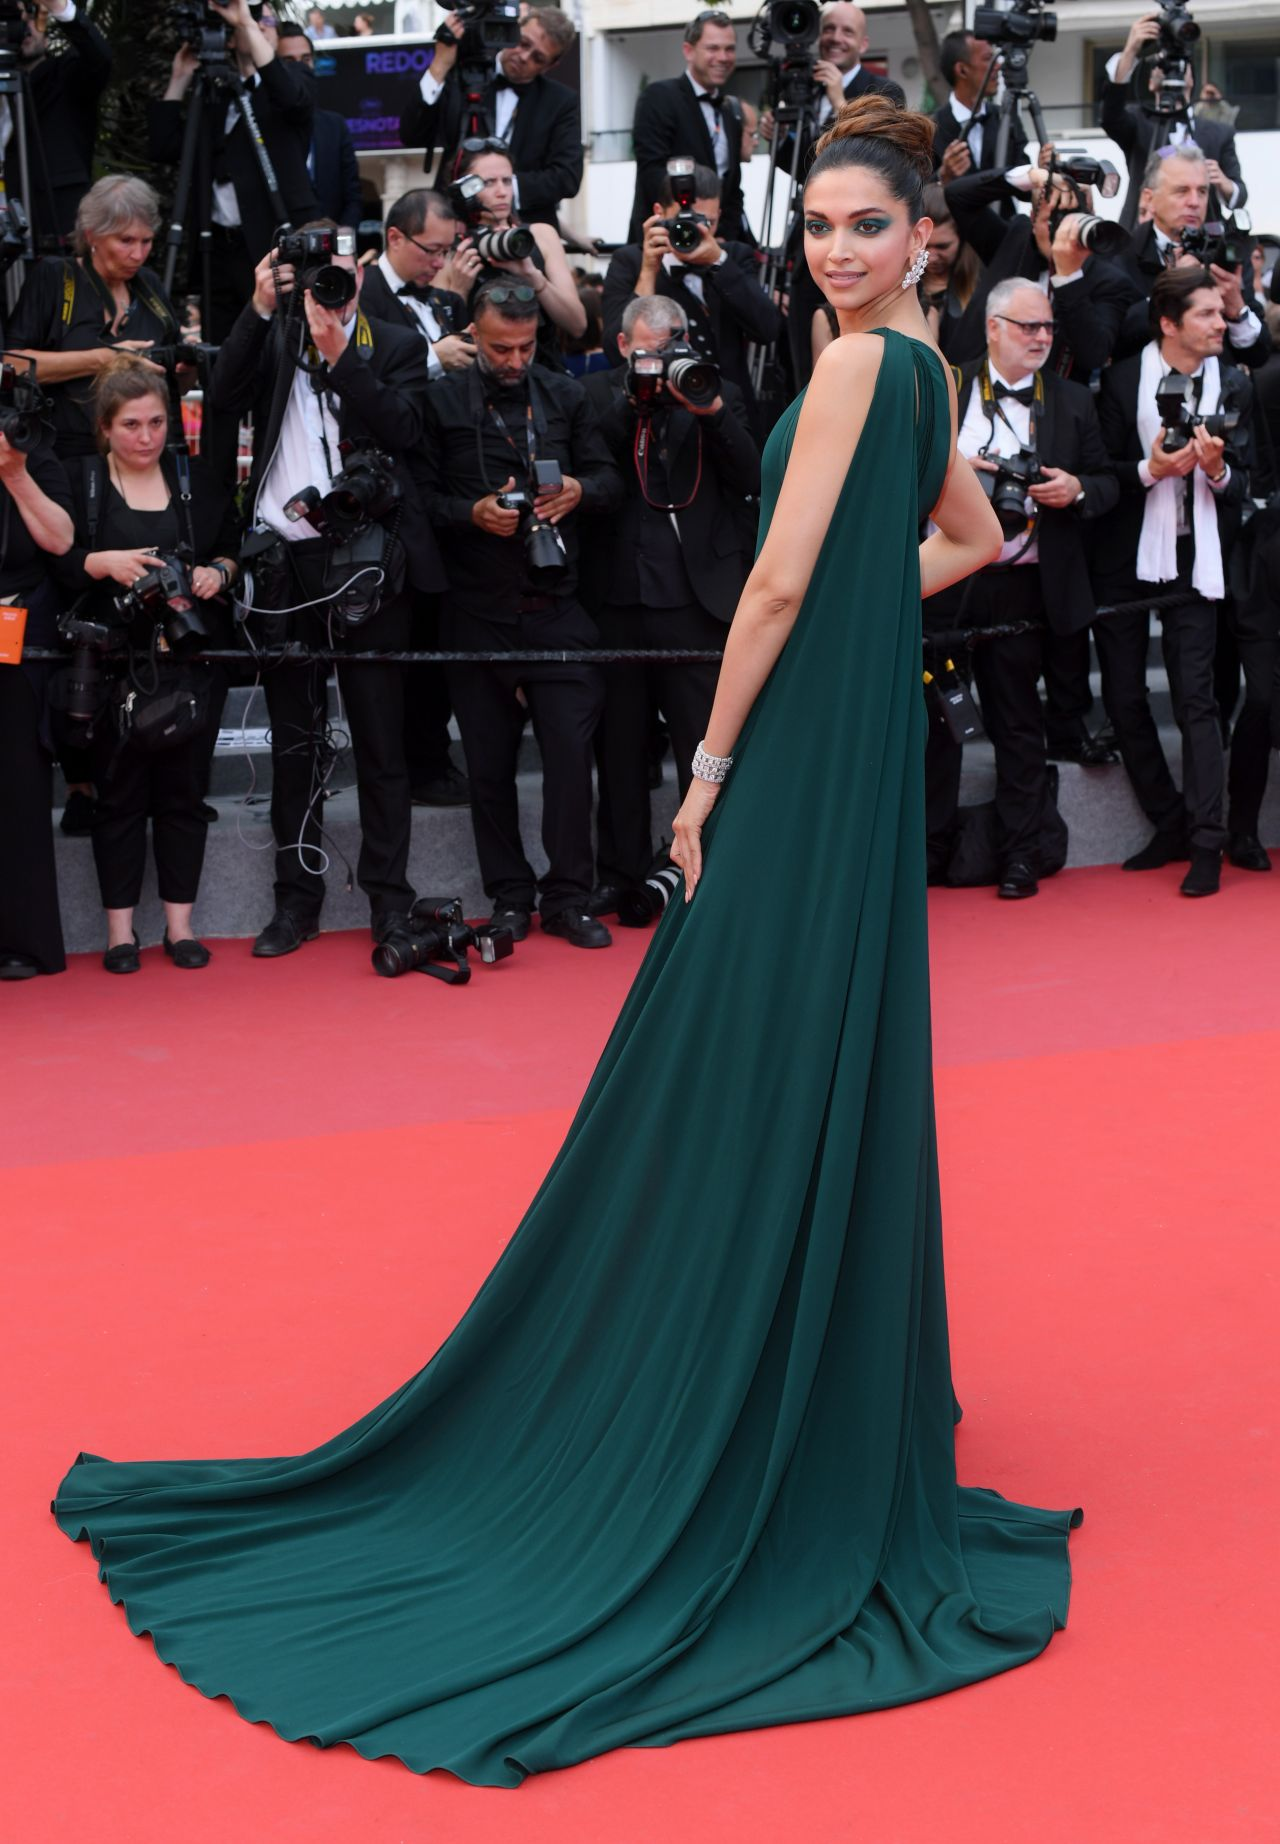 Deepika Padukone Loveless Quot Premiere At Cannes Film